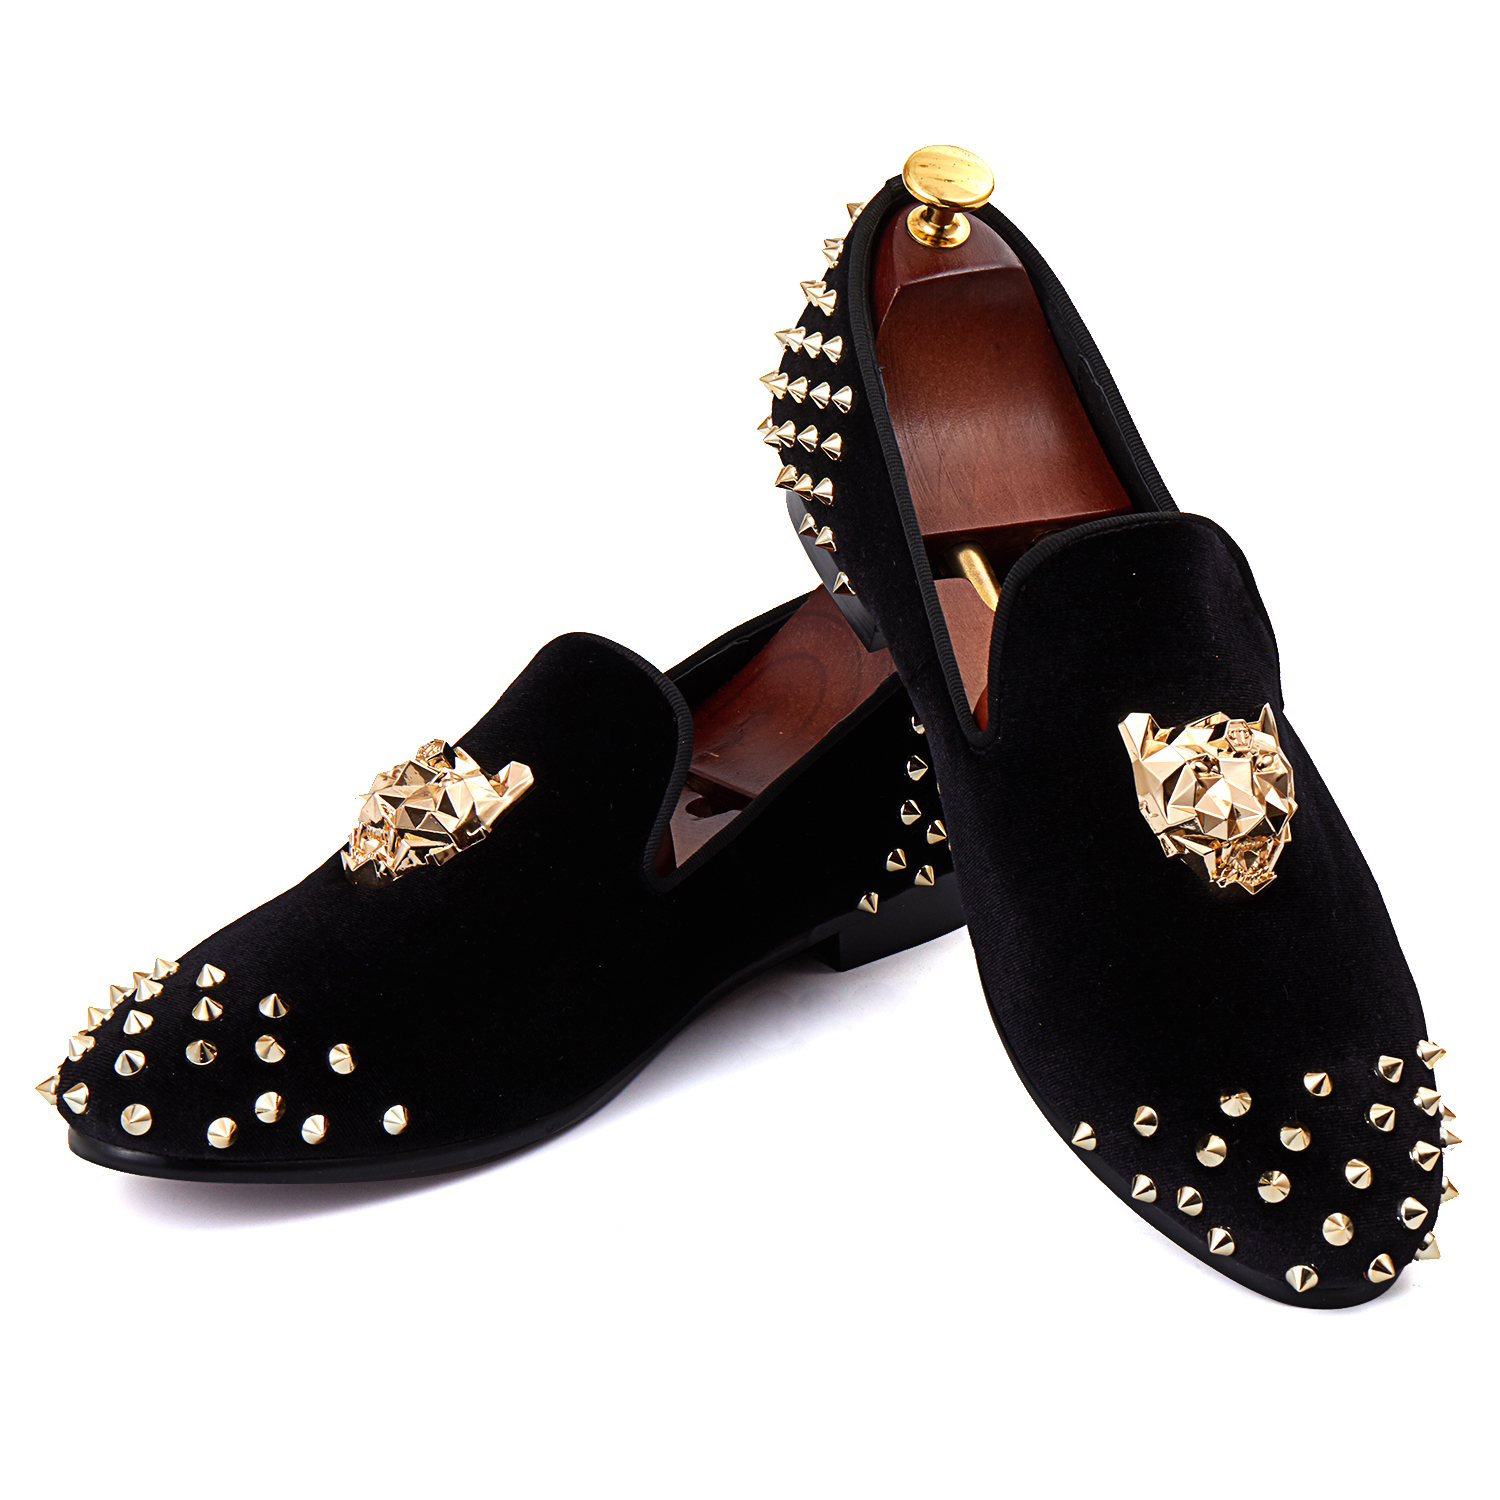 Branded Flat Shoes Rivets font b Black b font Men Velvet Loafers Animal Buckle font b